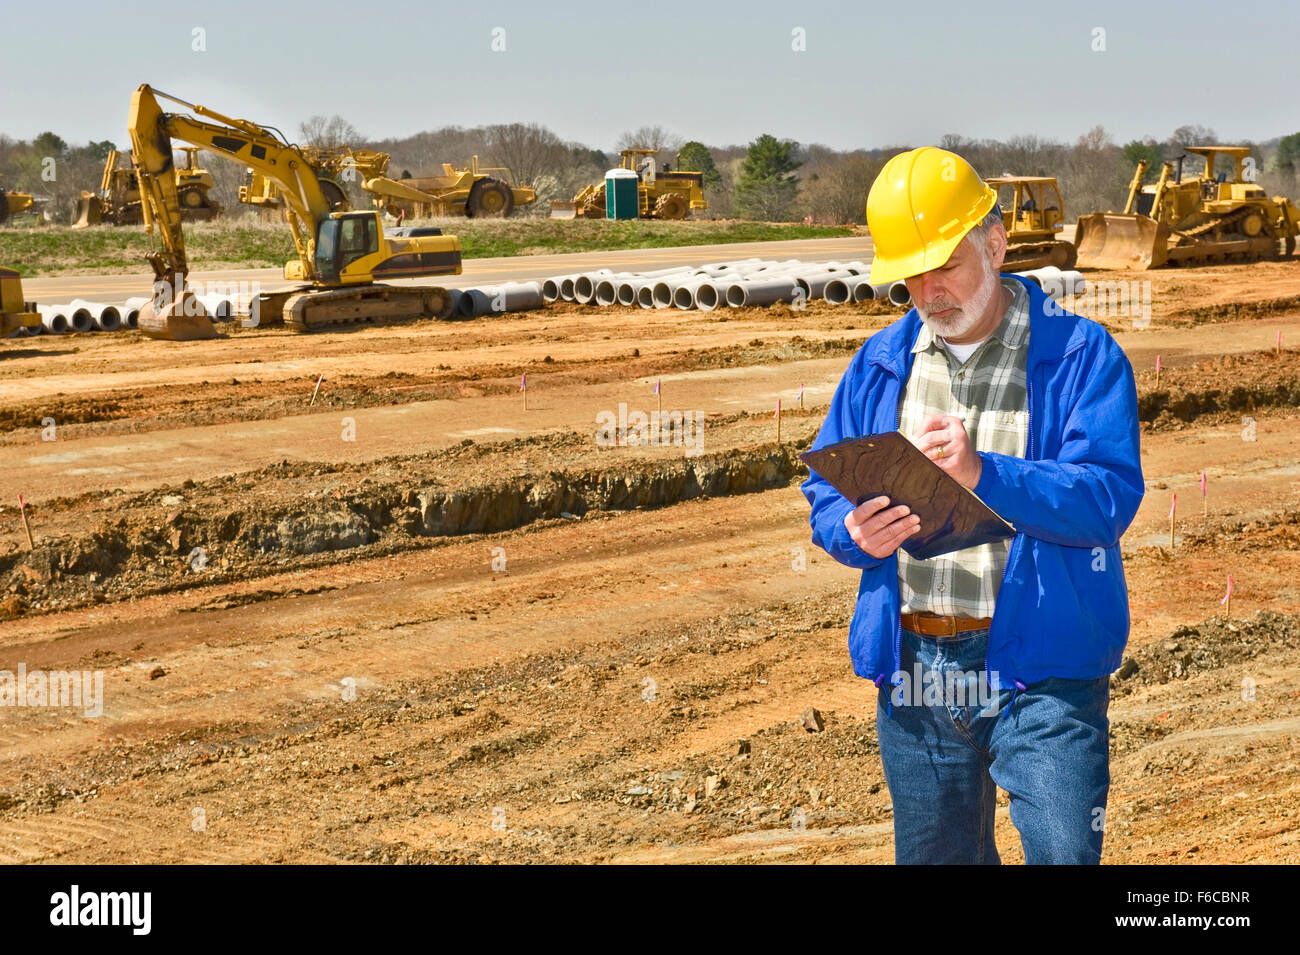 Foreman Keeping Records on Highway Construction Site - Stock Image